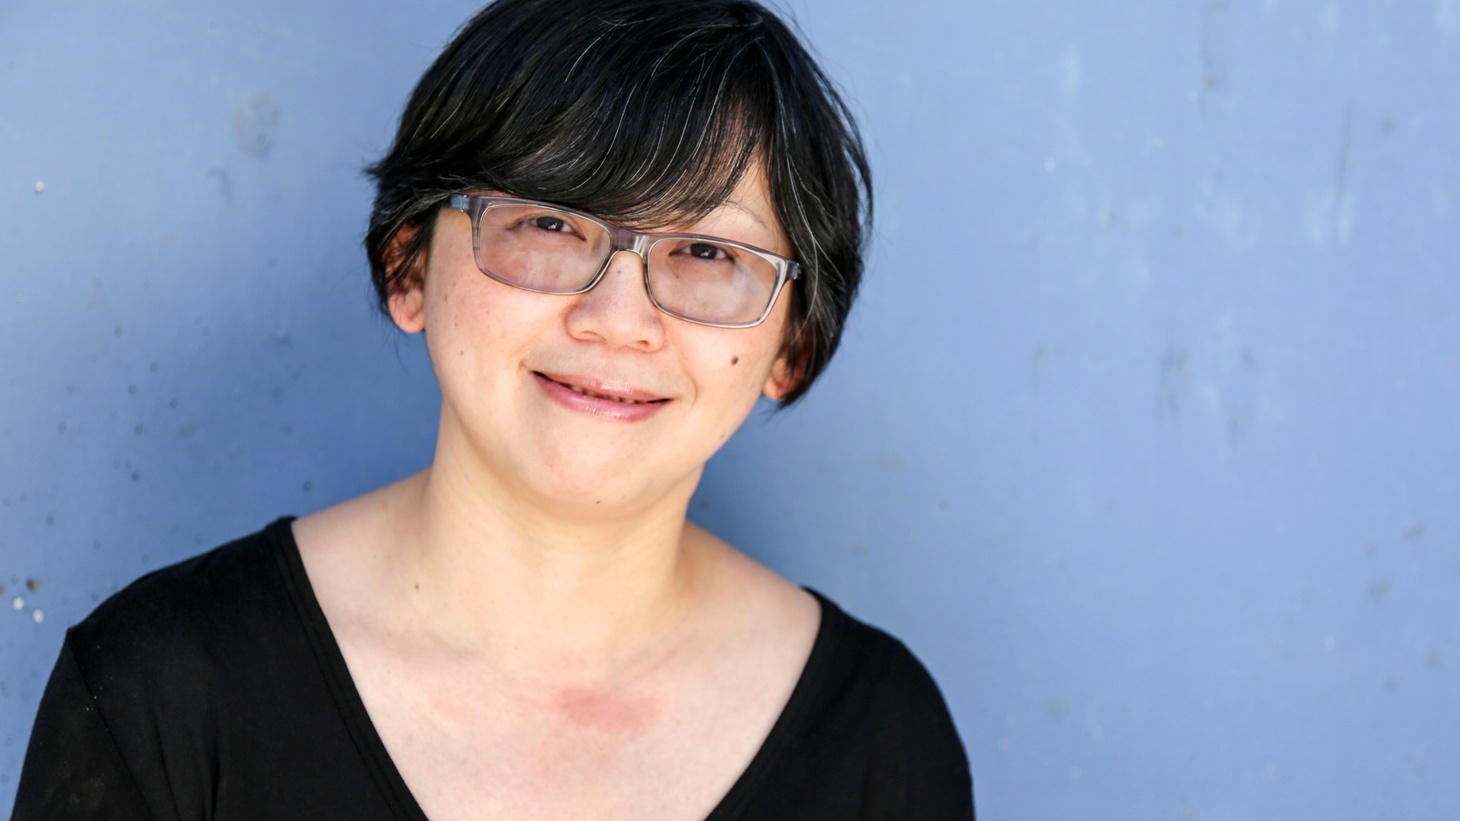 Written about a time when she was hospitalized for depression, Yiyun Li's Dear Friend, from My Life, I Write to You in Your Lifeis a combination of memoir and essay. She believes that cherished writers saved her from sorrow and suicidal ideation.